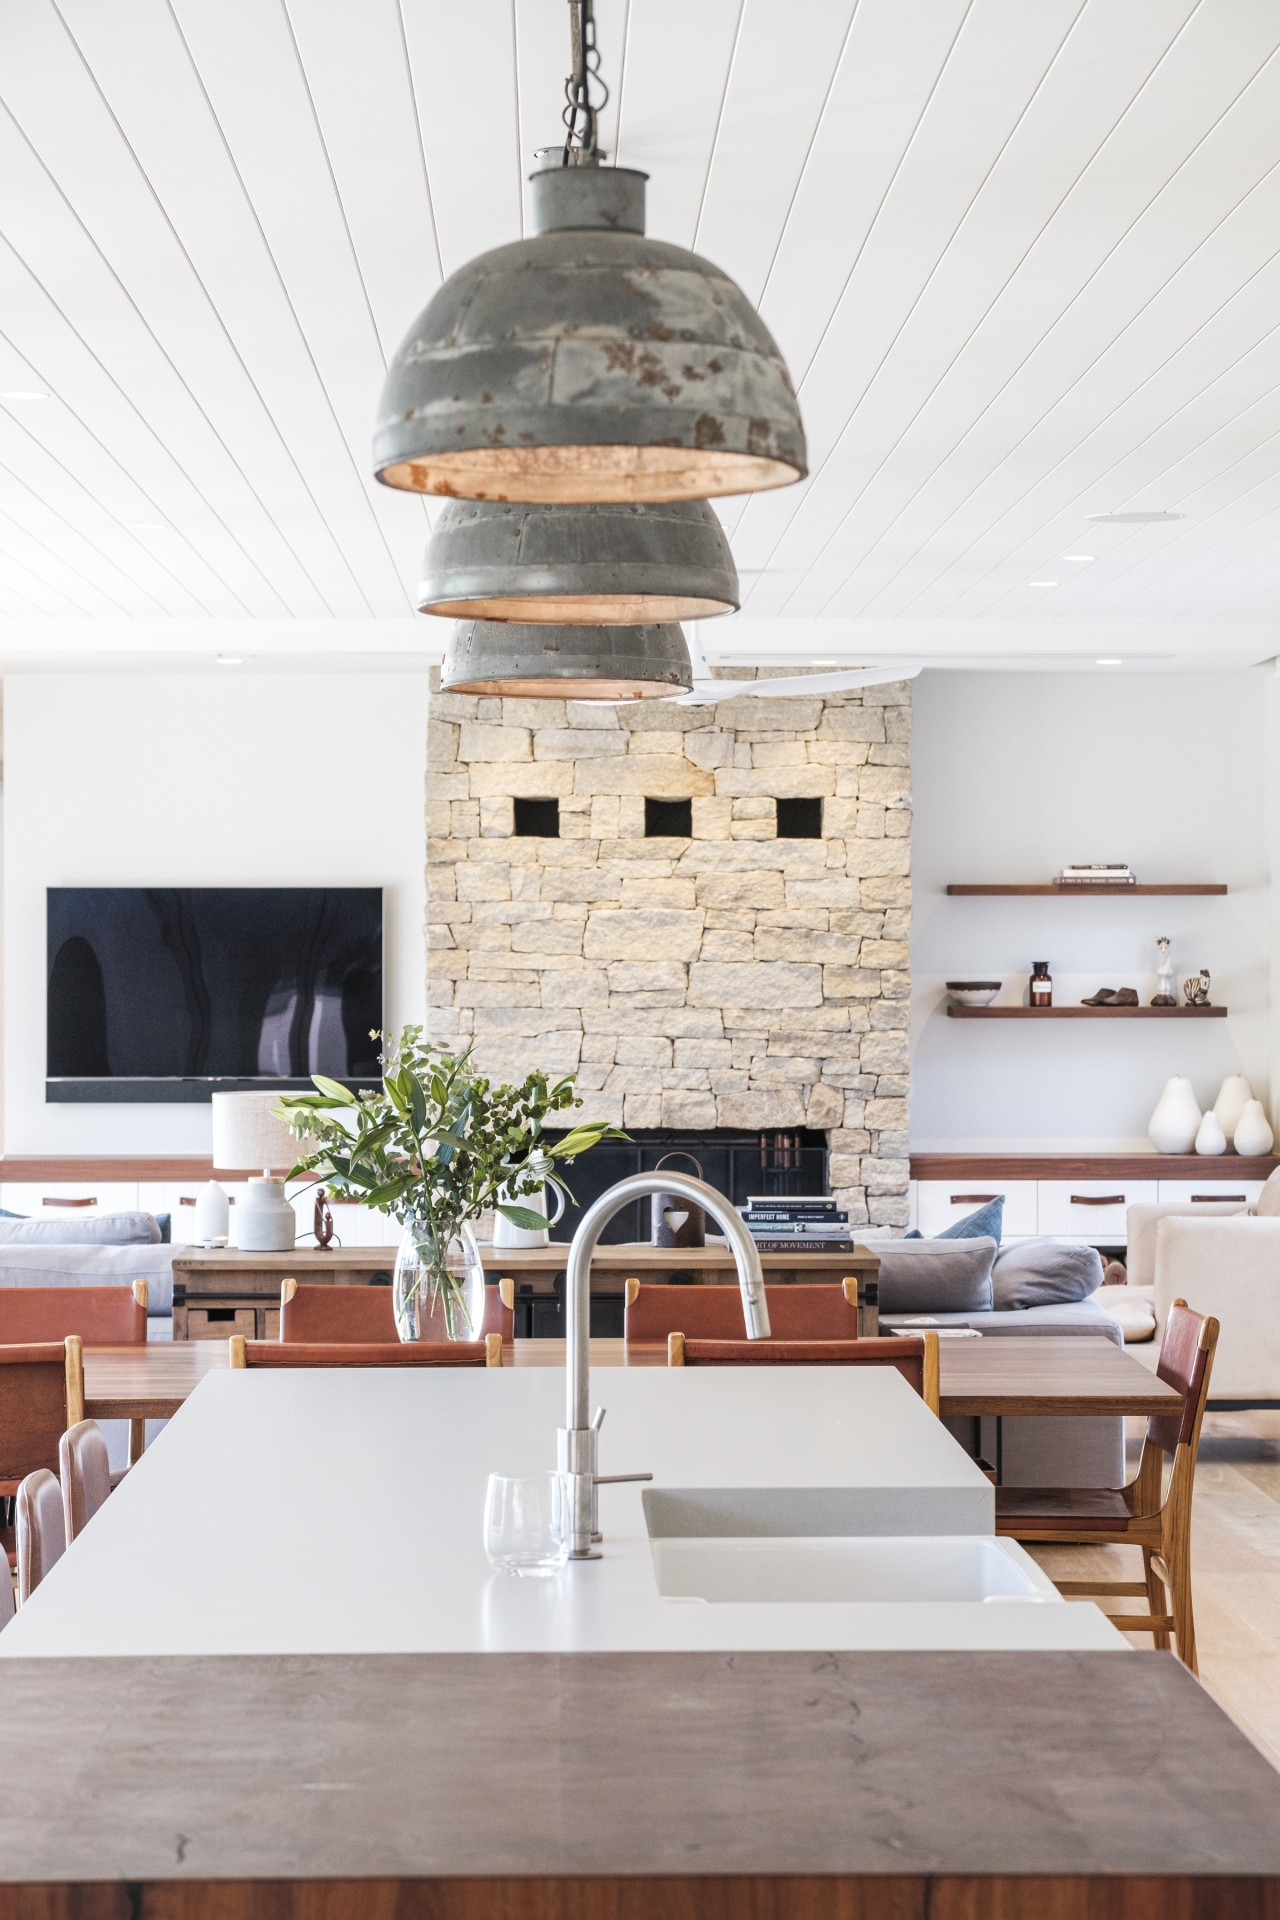 The kitchen features recycled timber elements and hints